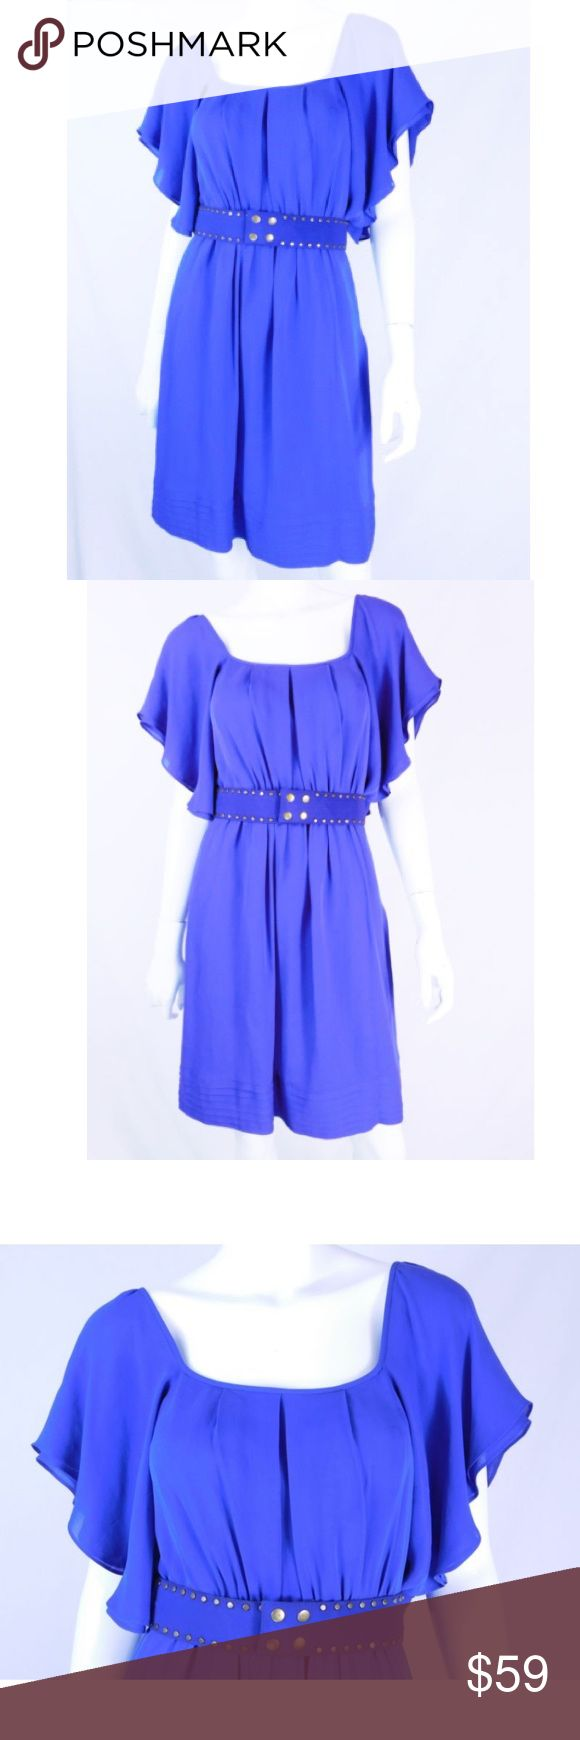 """Shoshanna Royal Blue Silk Belted Party Dress Shoshanna Royal Blue Silk Belted Party Dress - Size 4 Size 4 100% silk, Lining 100% acetate Royal blue color Belted with snap closure Side zipper Flutter styled arms  Condition: Pristine condition (Second hand item-has been worn by previous owner).  Measurements  Length: 44"""" Chest: 36.5"""" Waist: 29"""" Hips: 40.5""""                                    100% Authenticity Guarantee + Hassle Free Returns Shoshanna Dresses"""